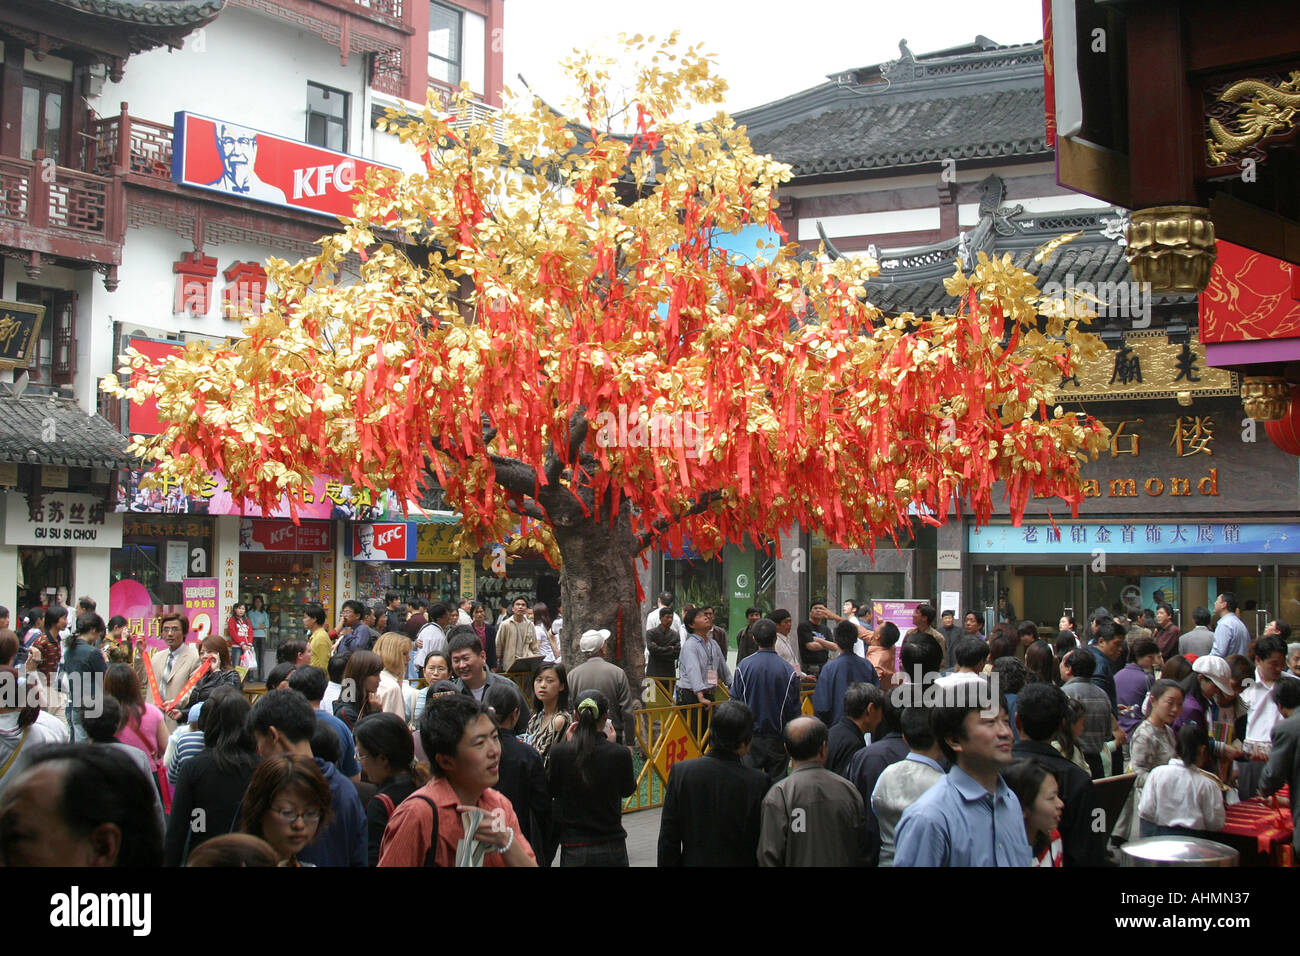 crowd around a gold leaf wish tree in shanghai stock image